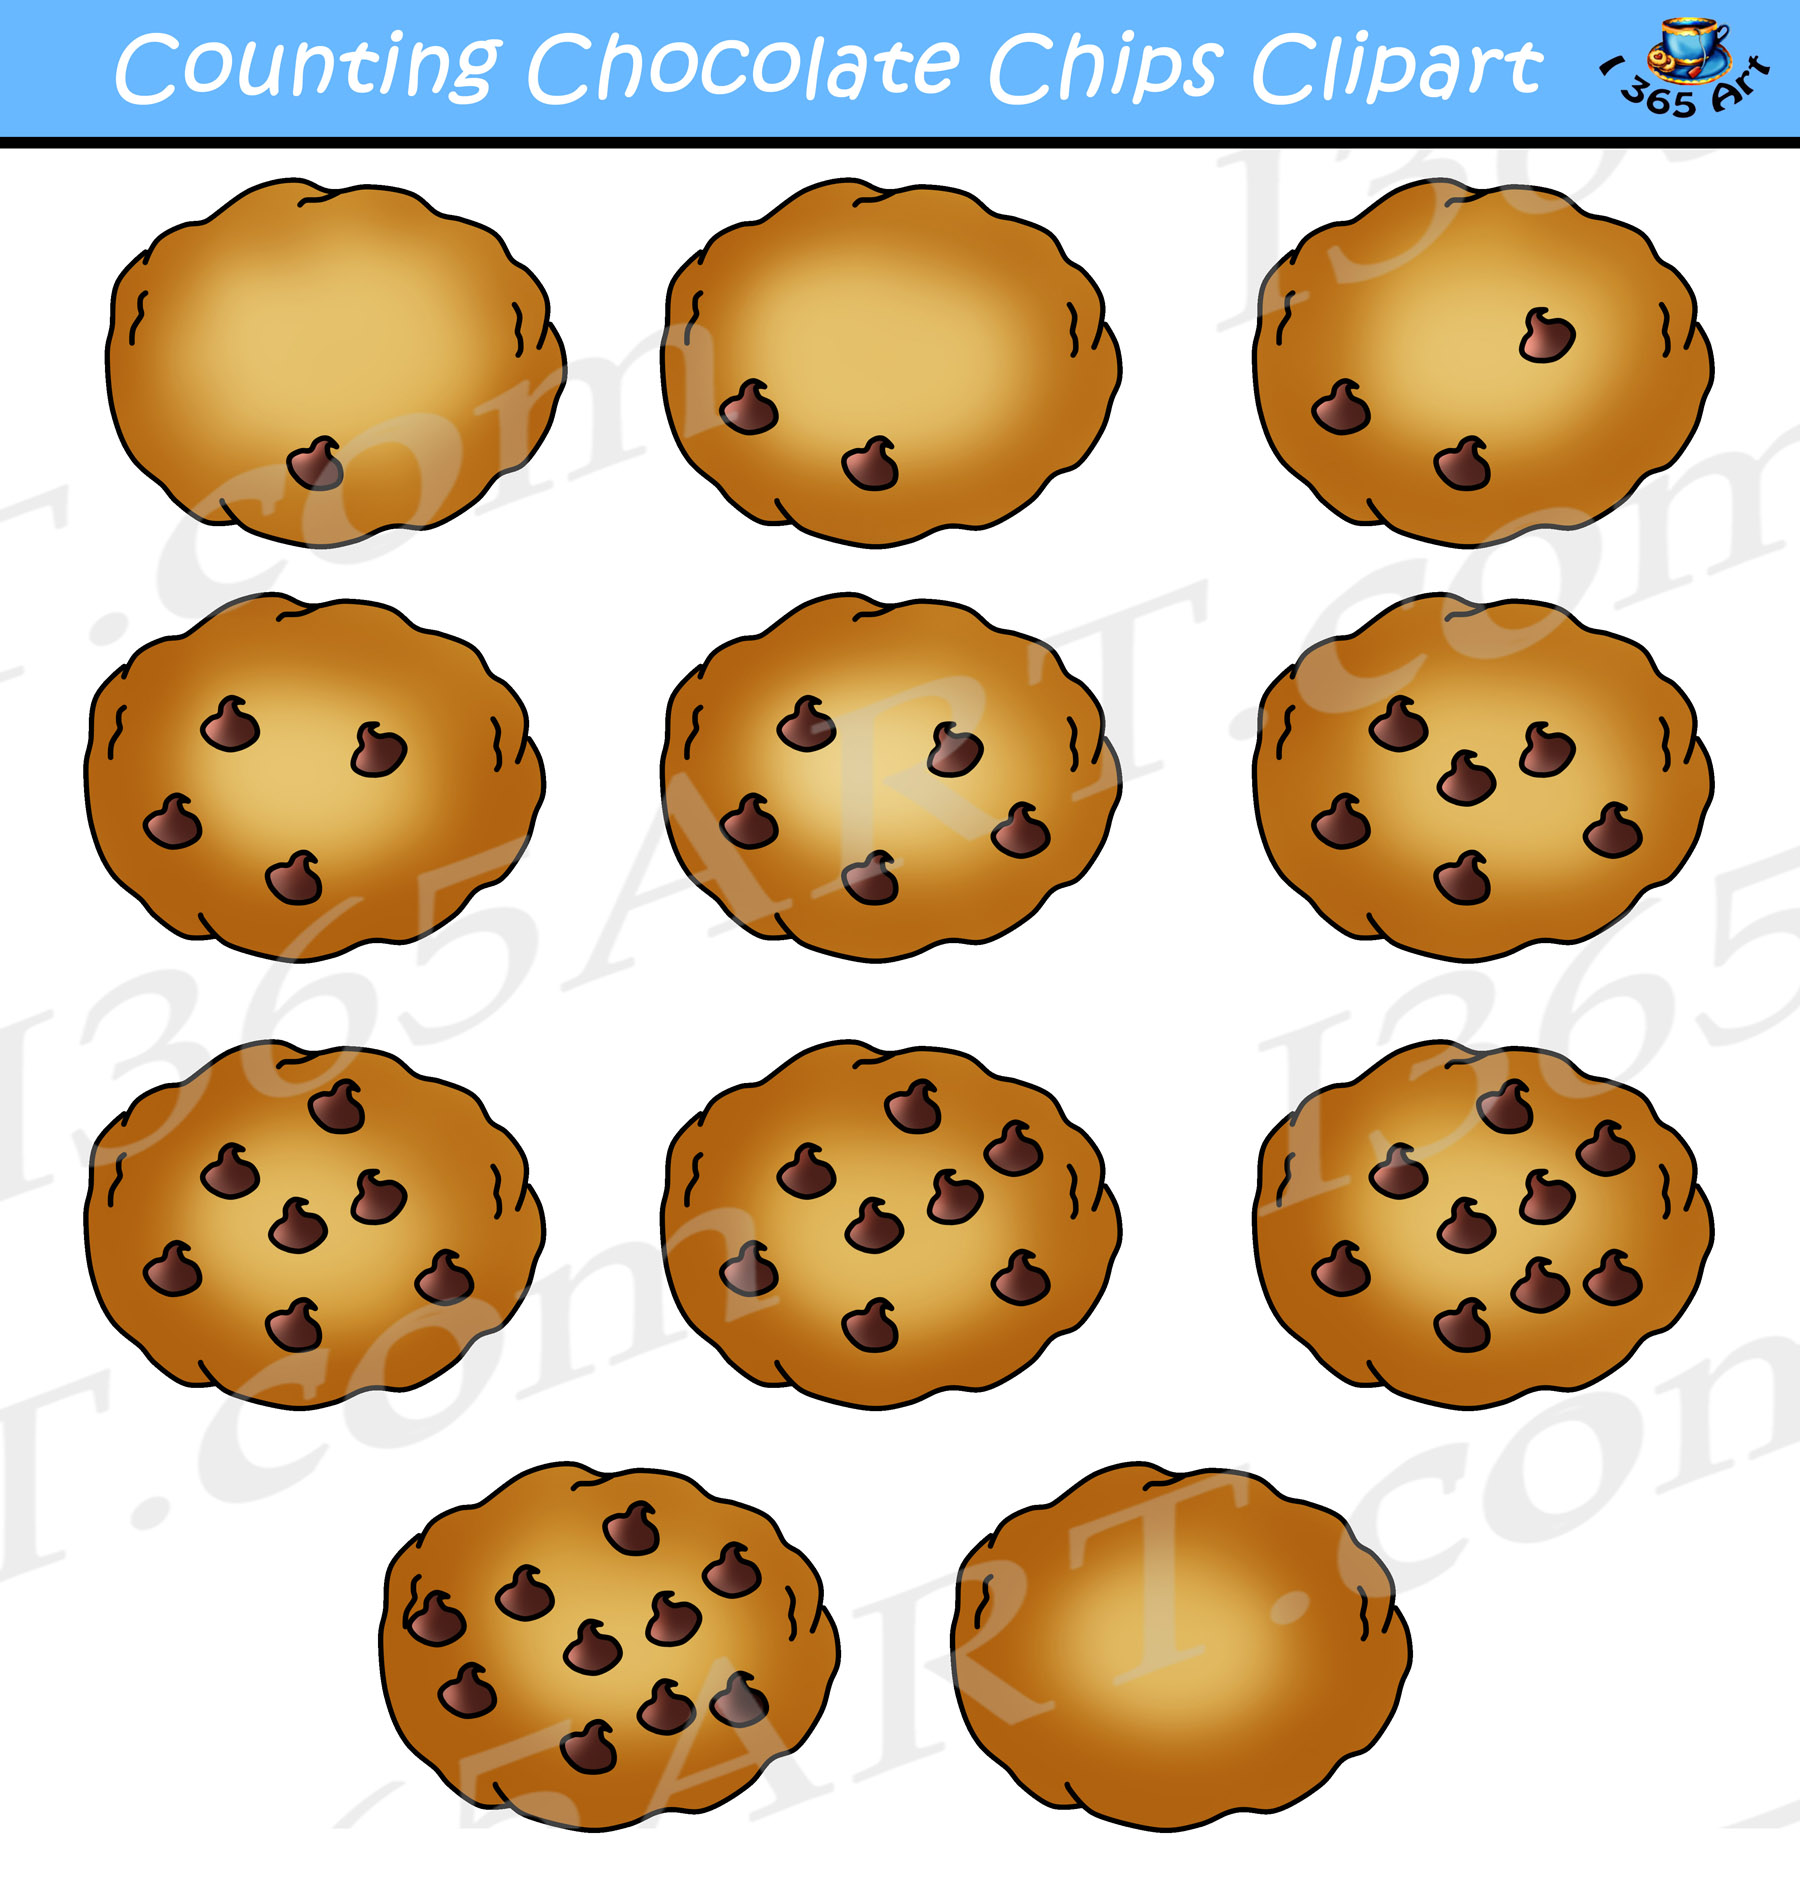 Cookie clipart chocolate chip cookie. Counting cookies commercial use